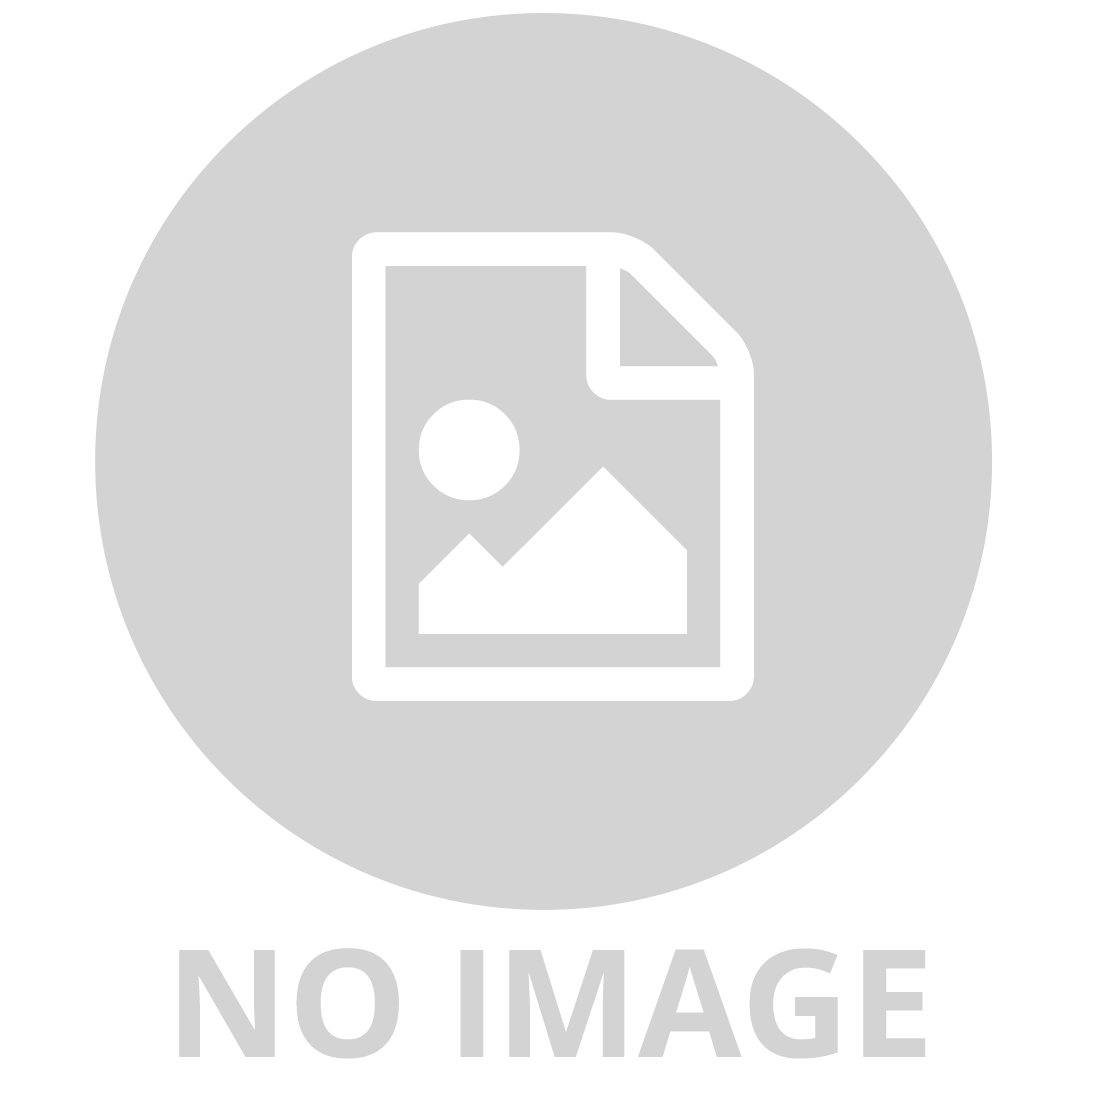 JOHN DEERE GATOR 6V ELECTRIC RIDE-ON